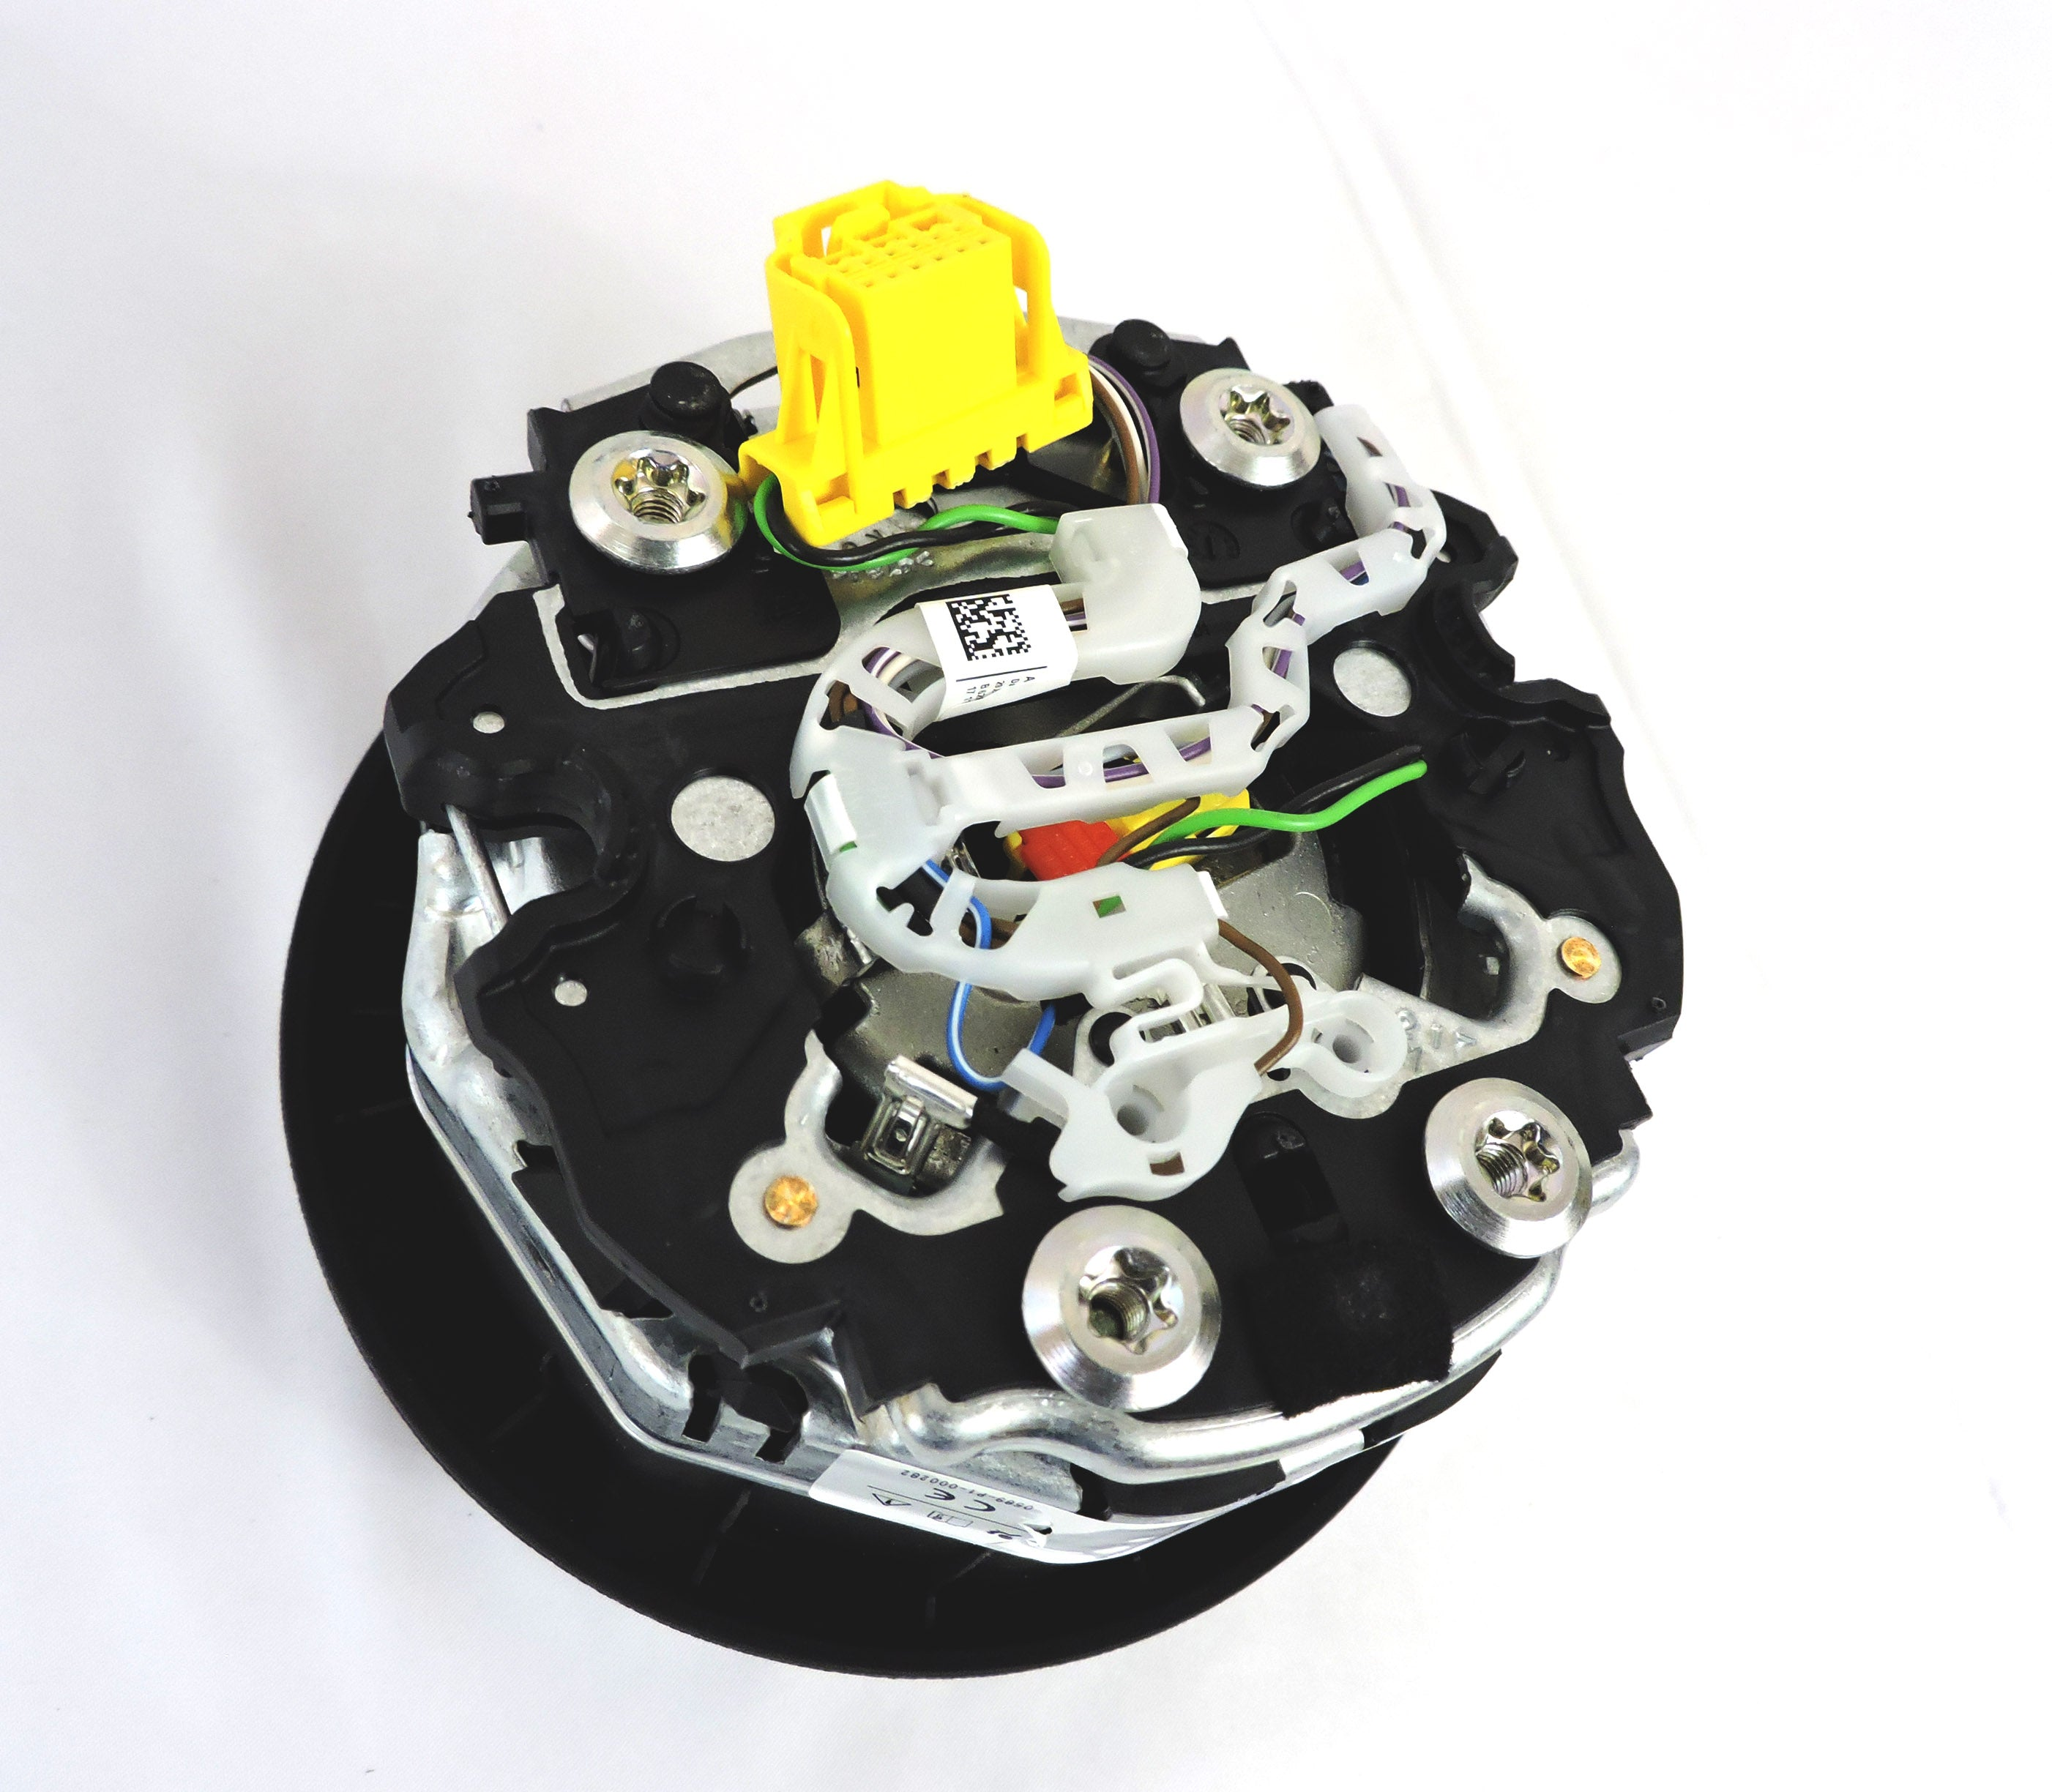 MK7 GTI/Golf R/GLI OEM Airbag with Wiring Harness on